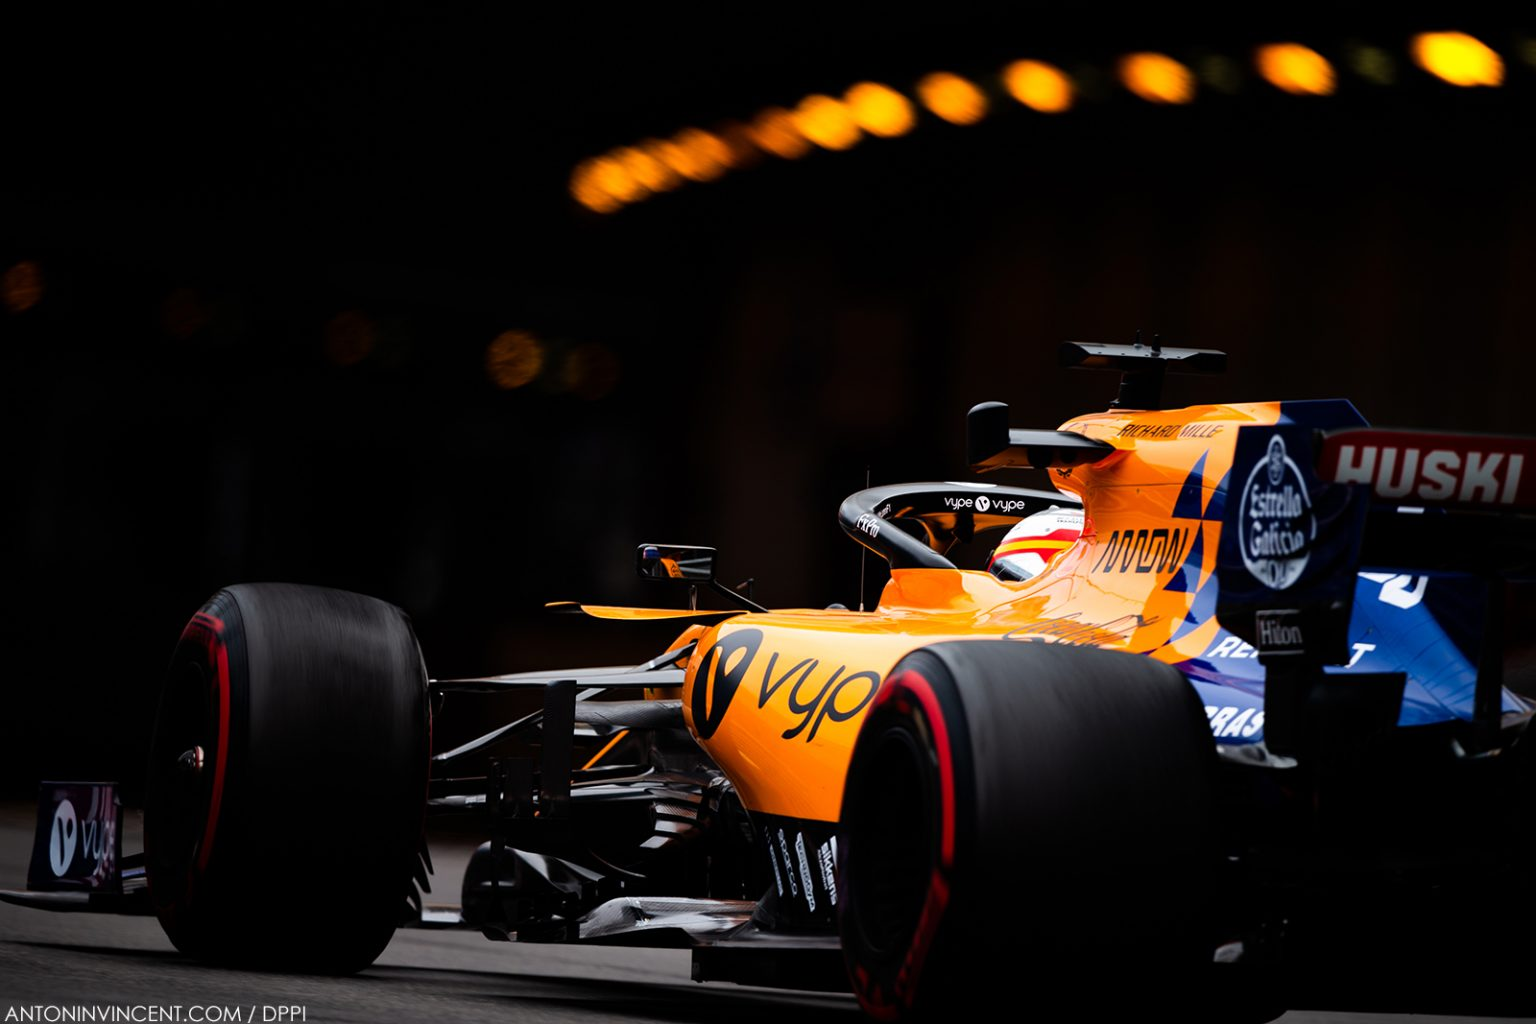 55 SAINZ Carlos (spa), McLaren Renault F1 MCL34, action during the 2019 Formula One World Championship, Grand Prix of Monaco from on May 23 to 26 in Monaco - Photo Antonin Vincent / DPPI